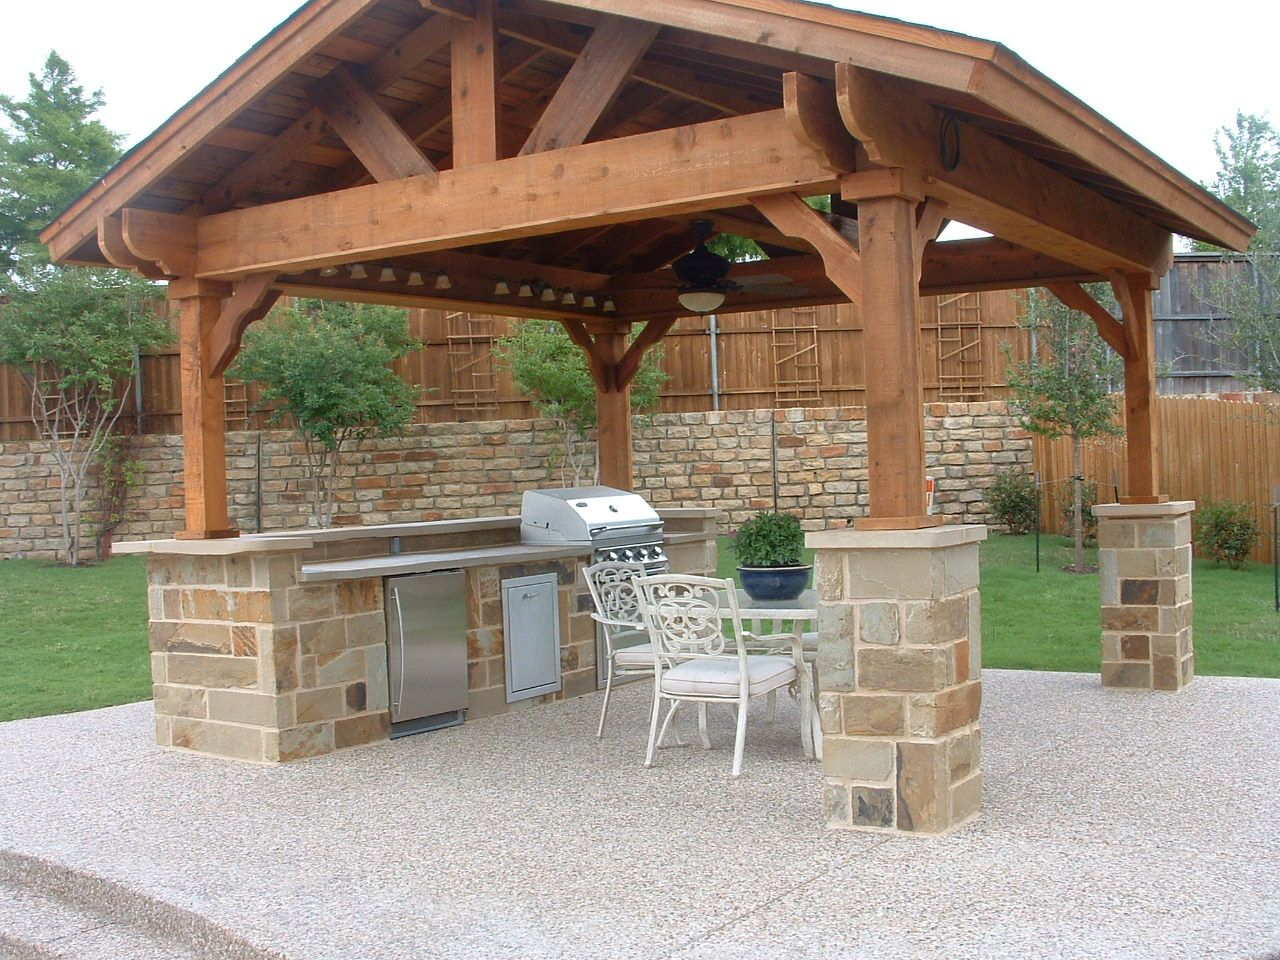 covered outdoor kitchen structures outside covered outdoor living spaces standalone shingled roof structure with kitchen ceiling fan fort